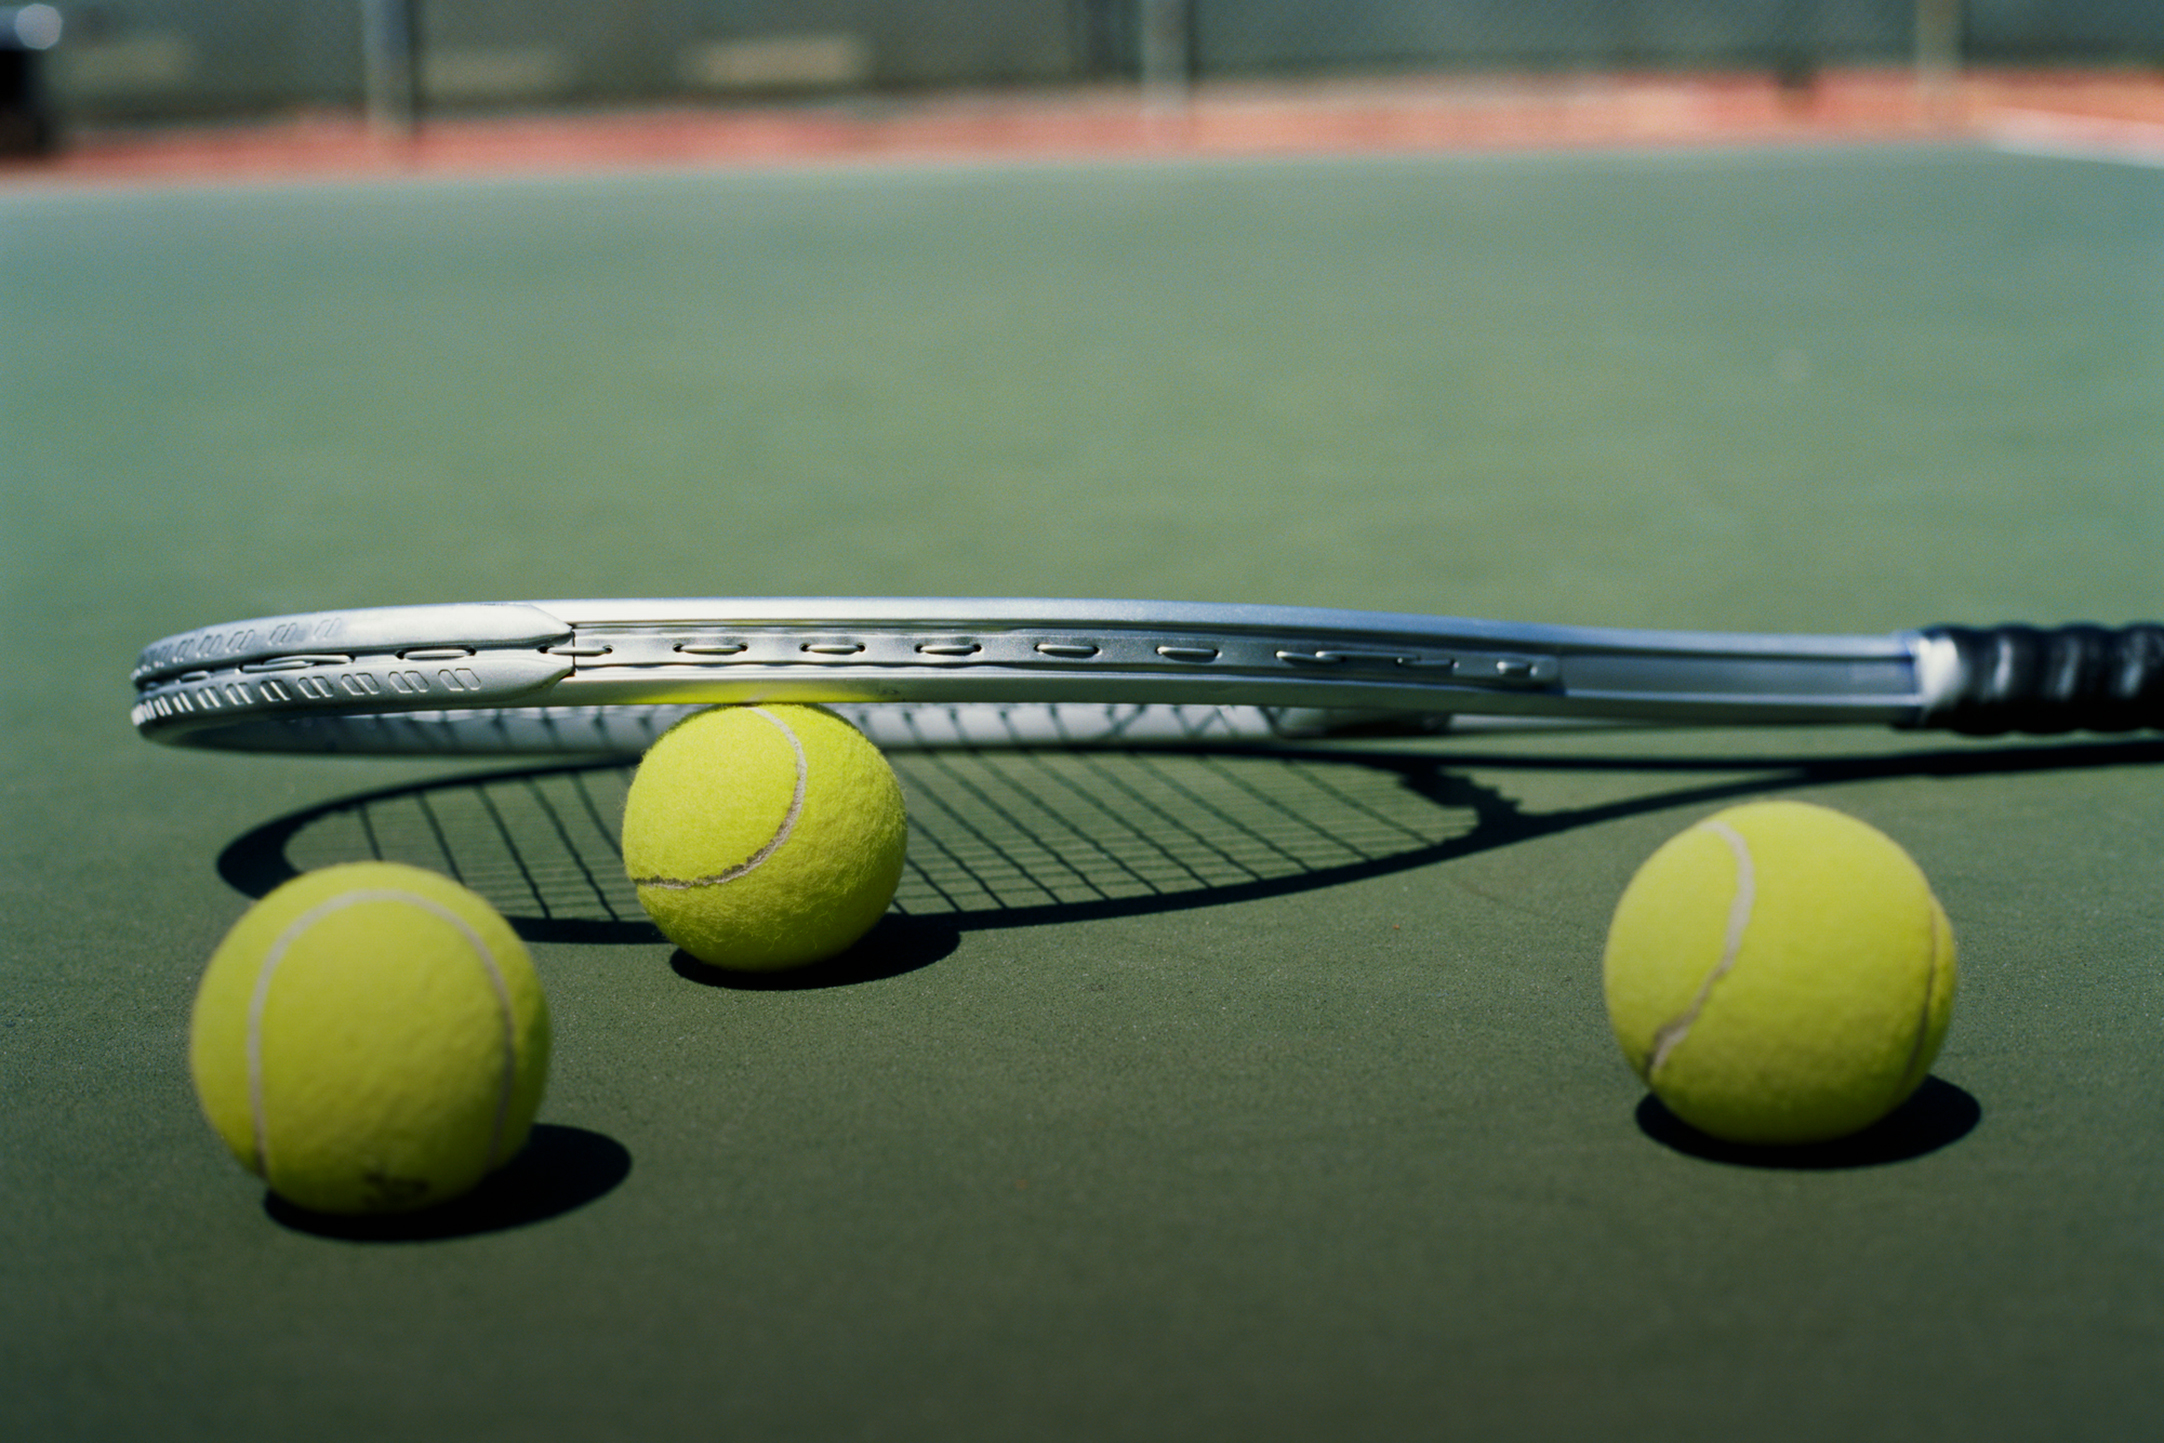 tennis racket with 3 balls